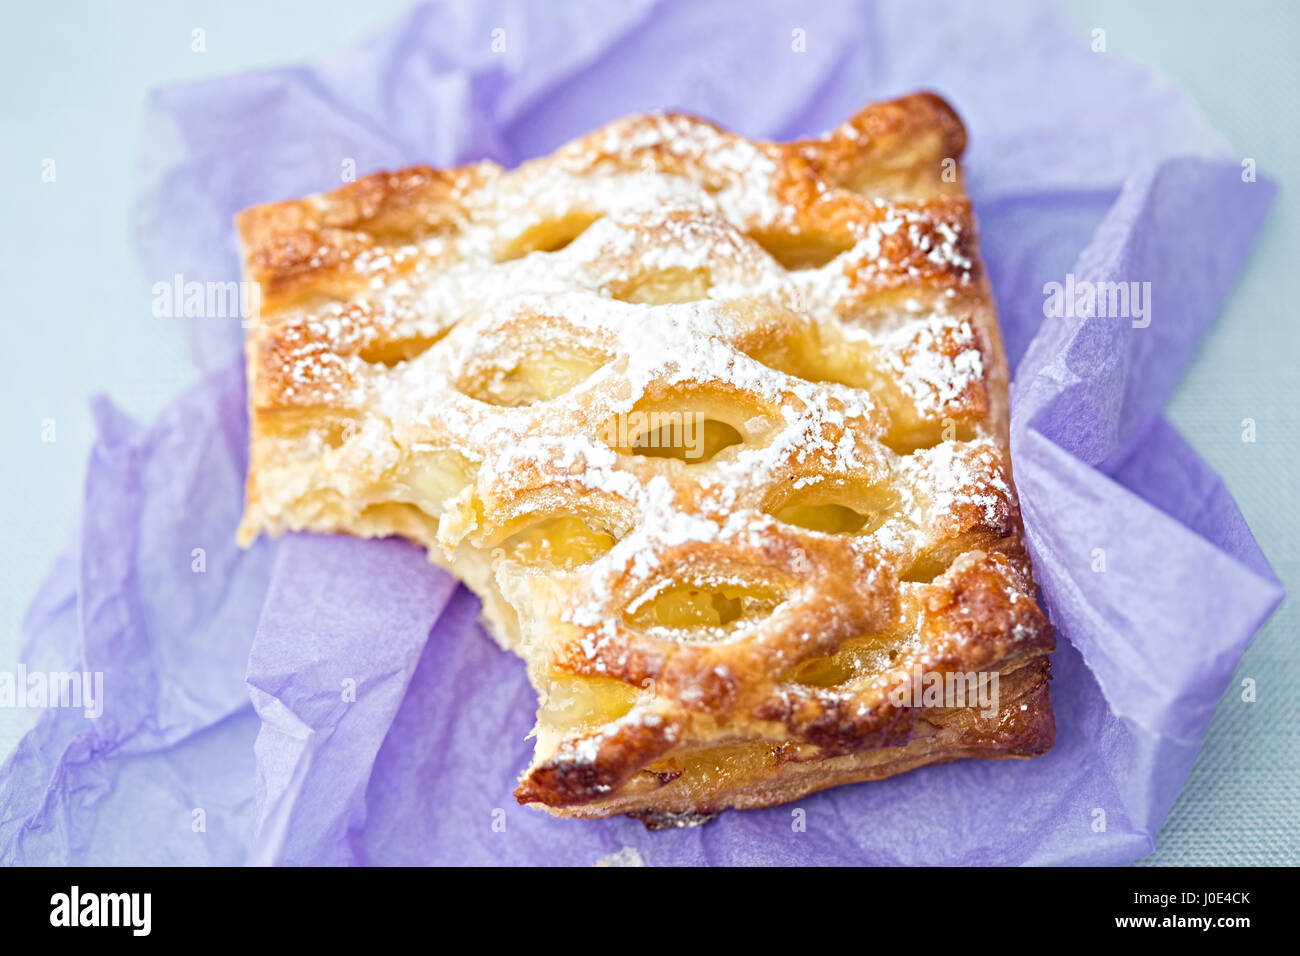 Apple pastry - Stock Image